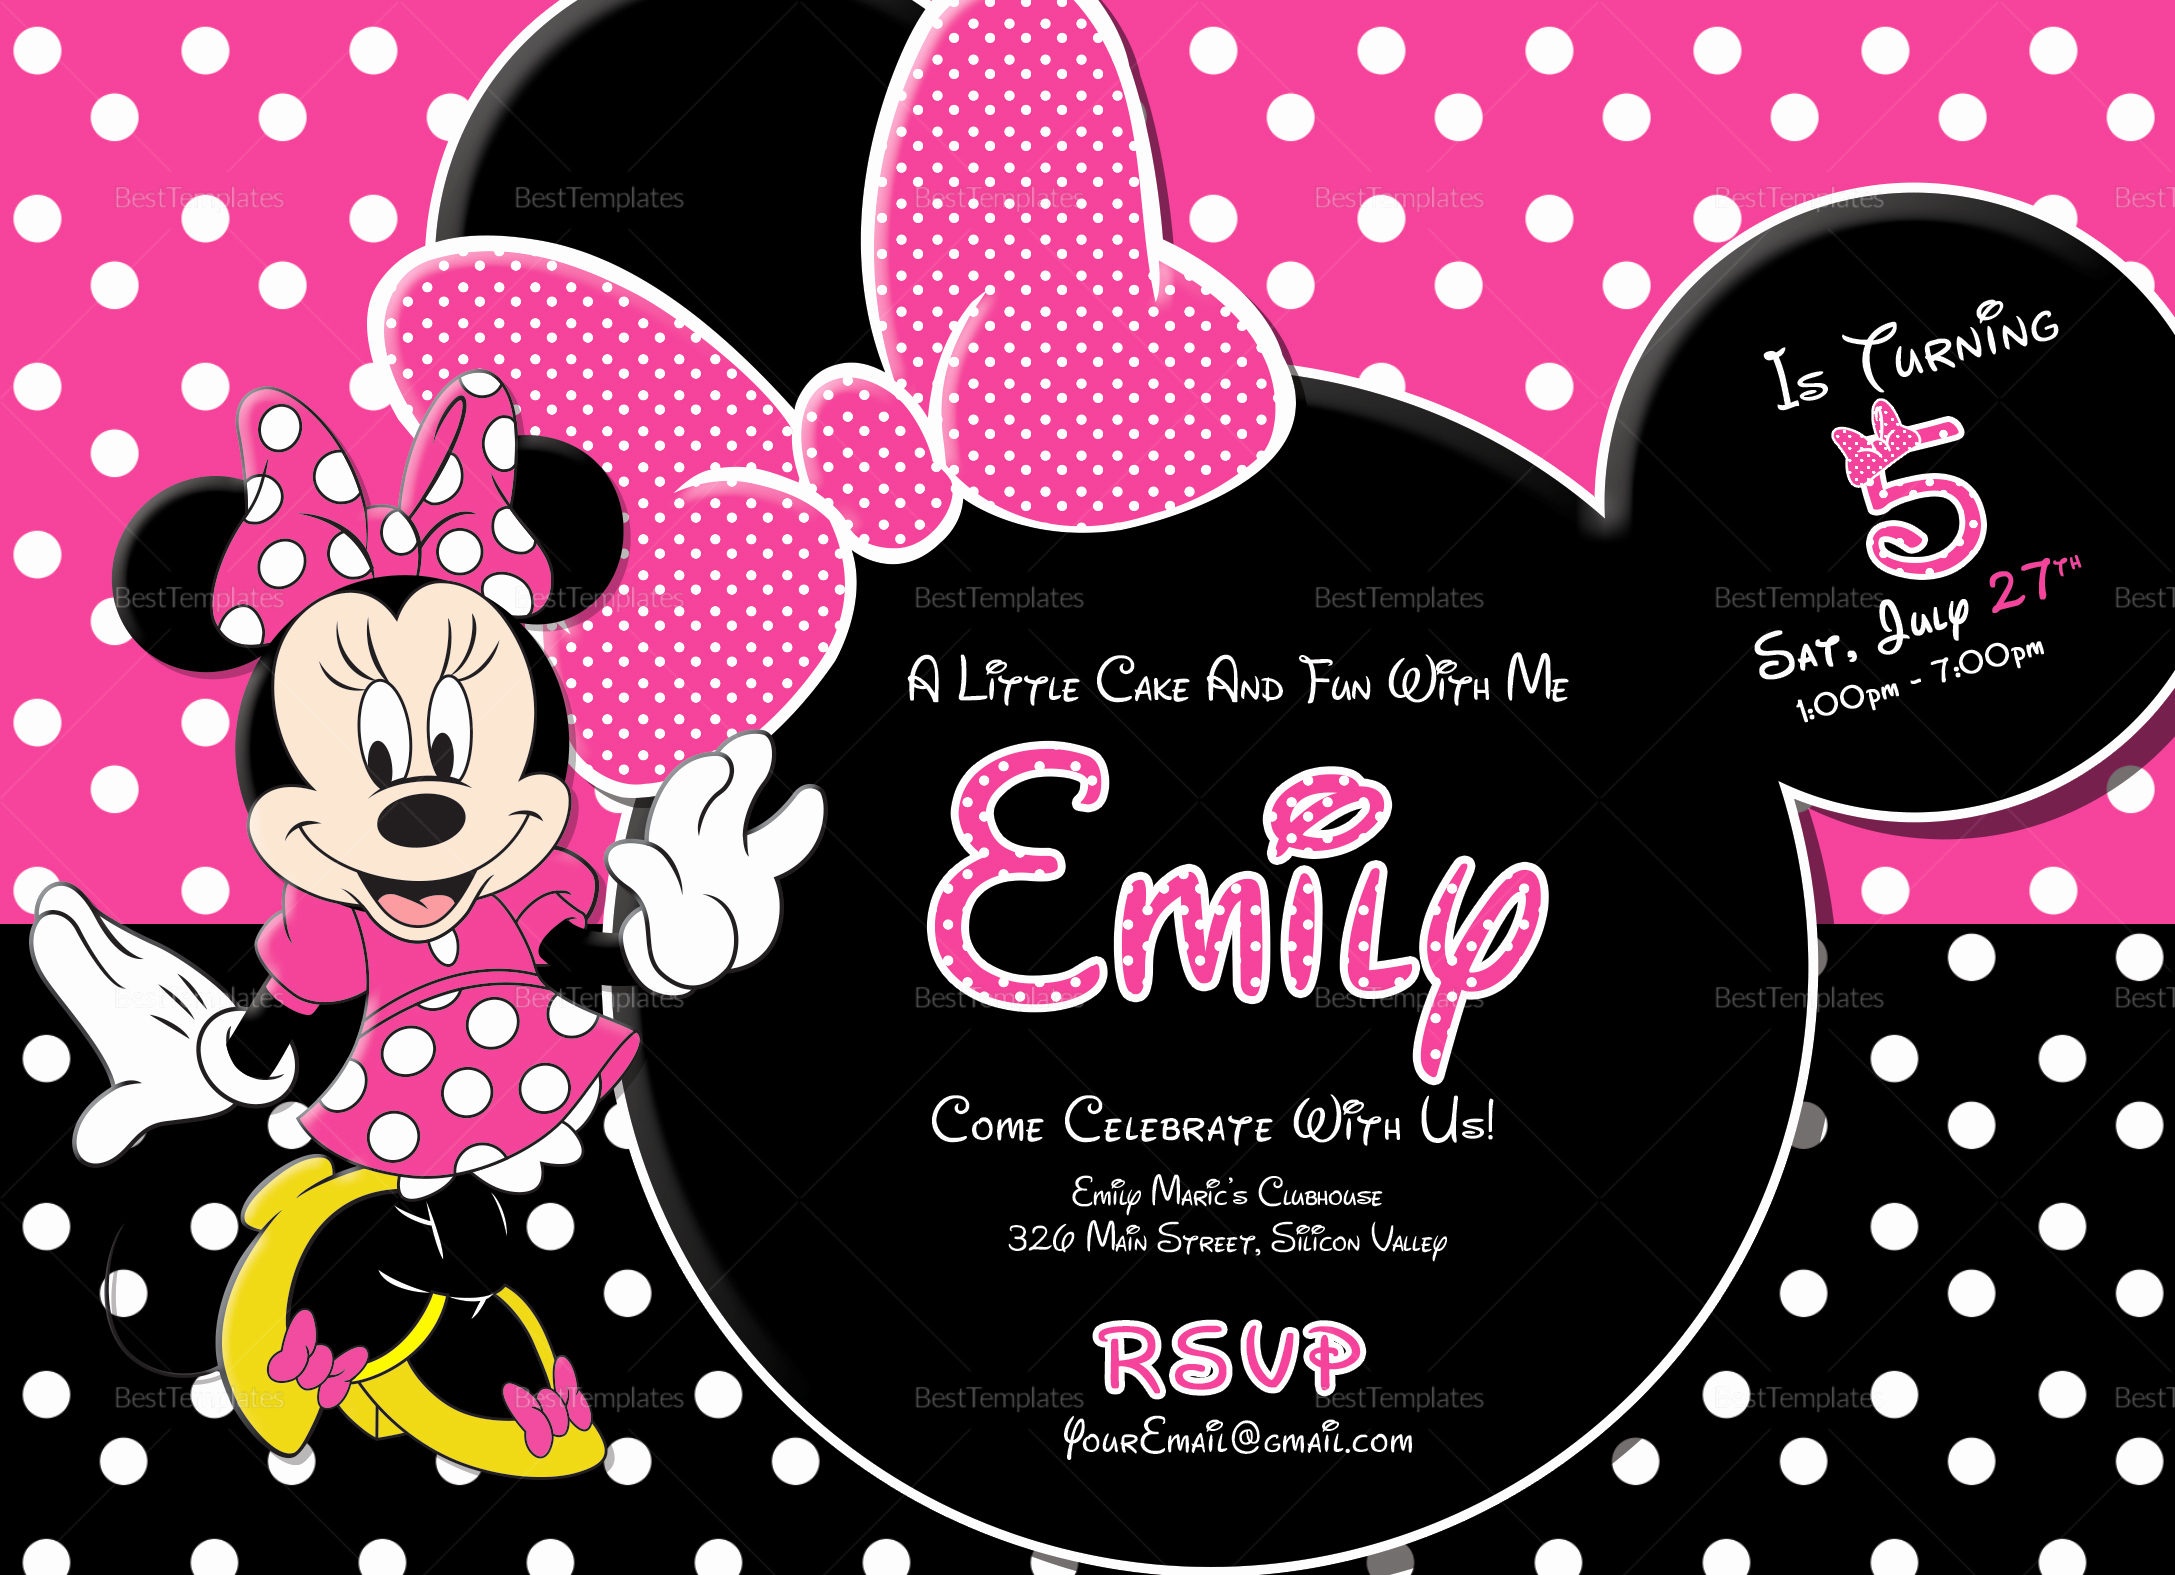 Minnie Mouse Birthday Invitation Template Awesome Special Minnie Mouse Birthday Invitation Design Template